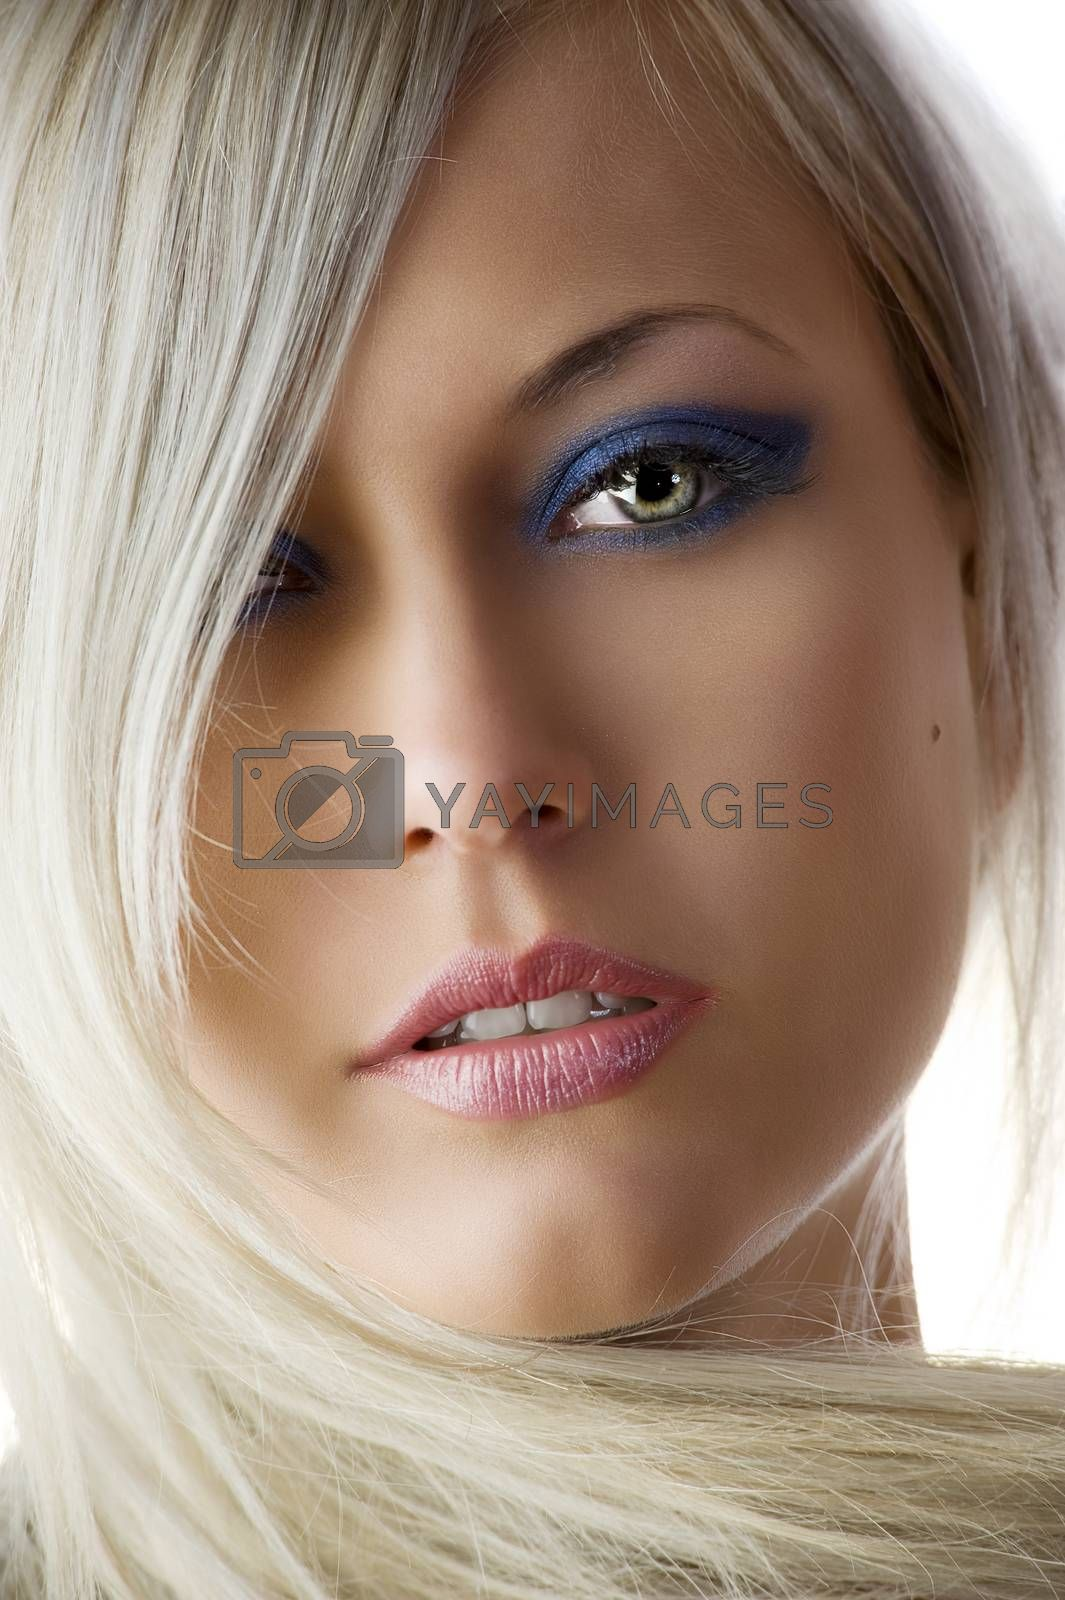 Royalty free image of blond woman portrait by fotoCD